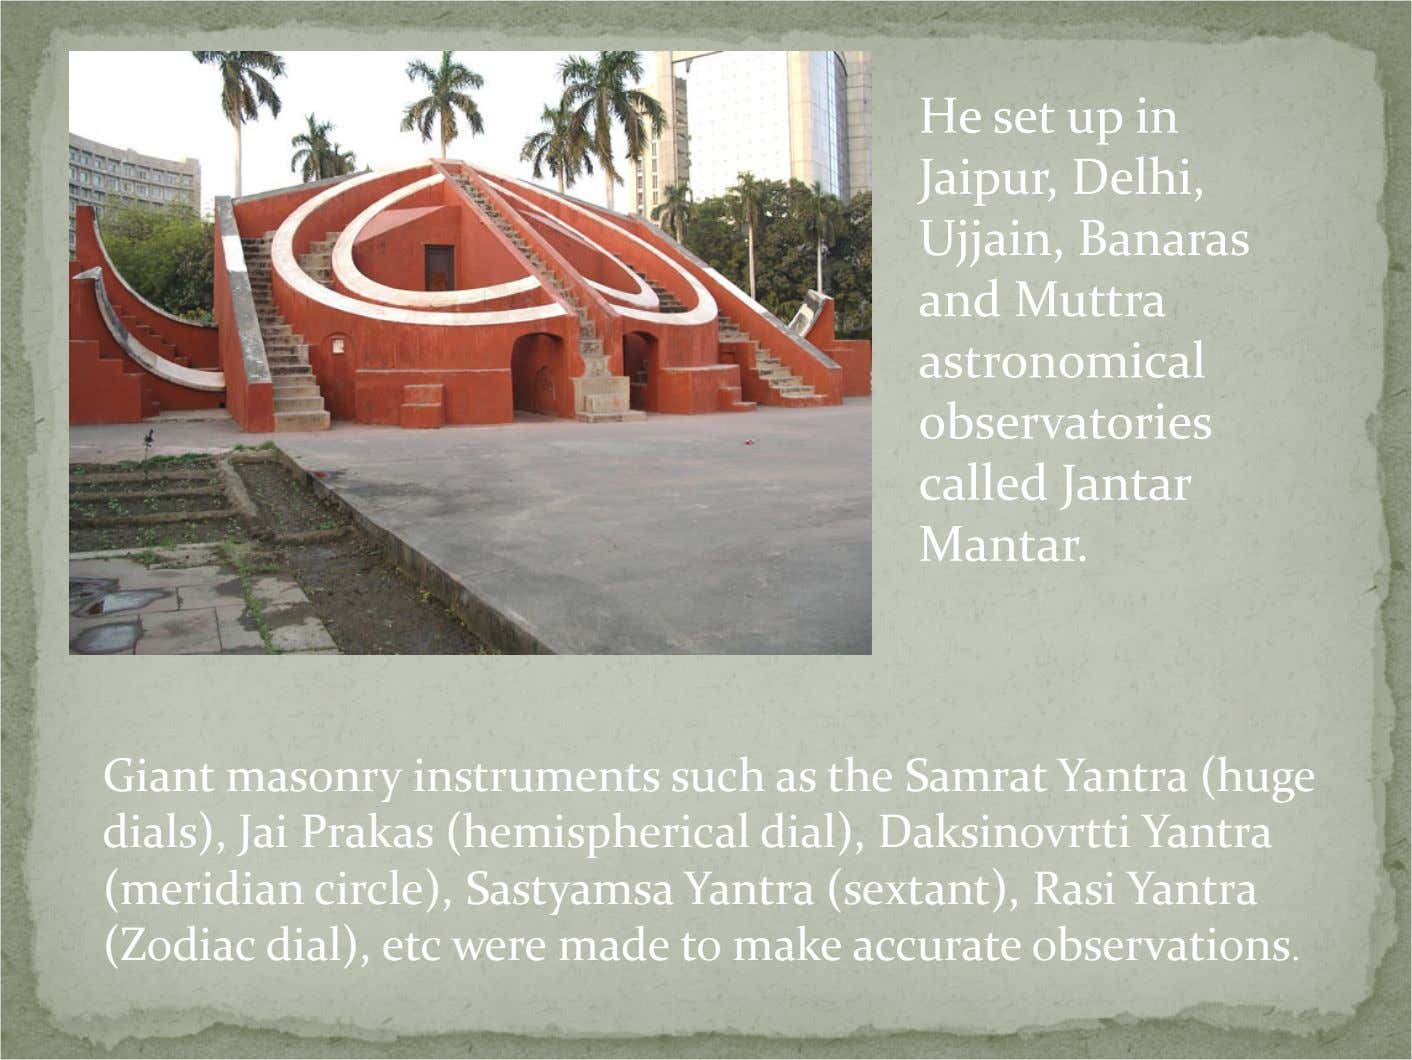 He set up in Jaipur, Delhi, Ujjain, Banaras and Muttra astronomical observatories called Jantar Mantar.